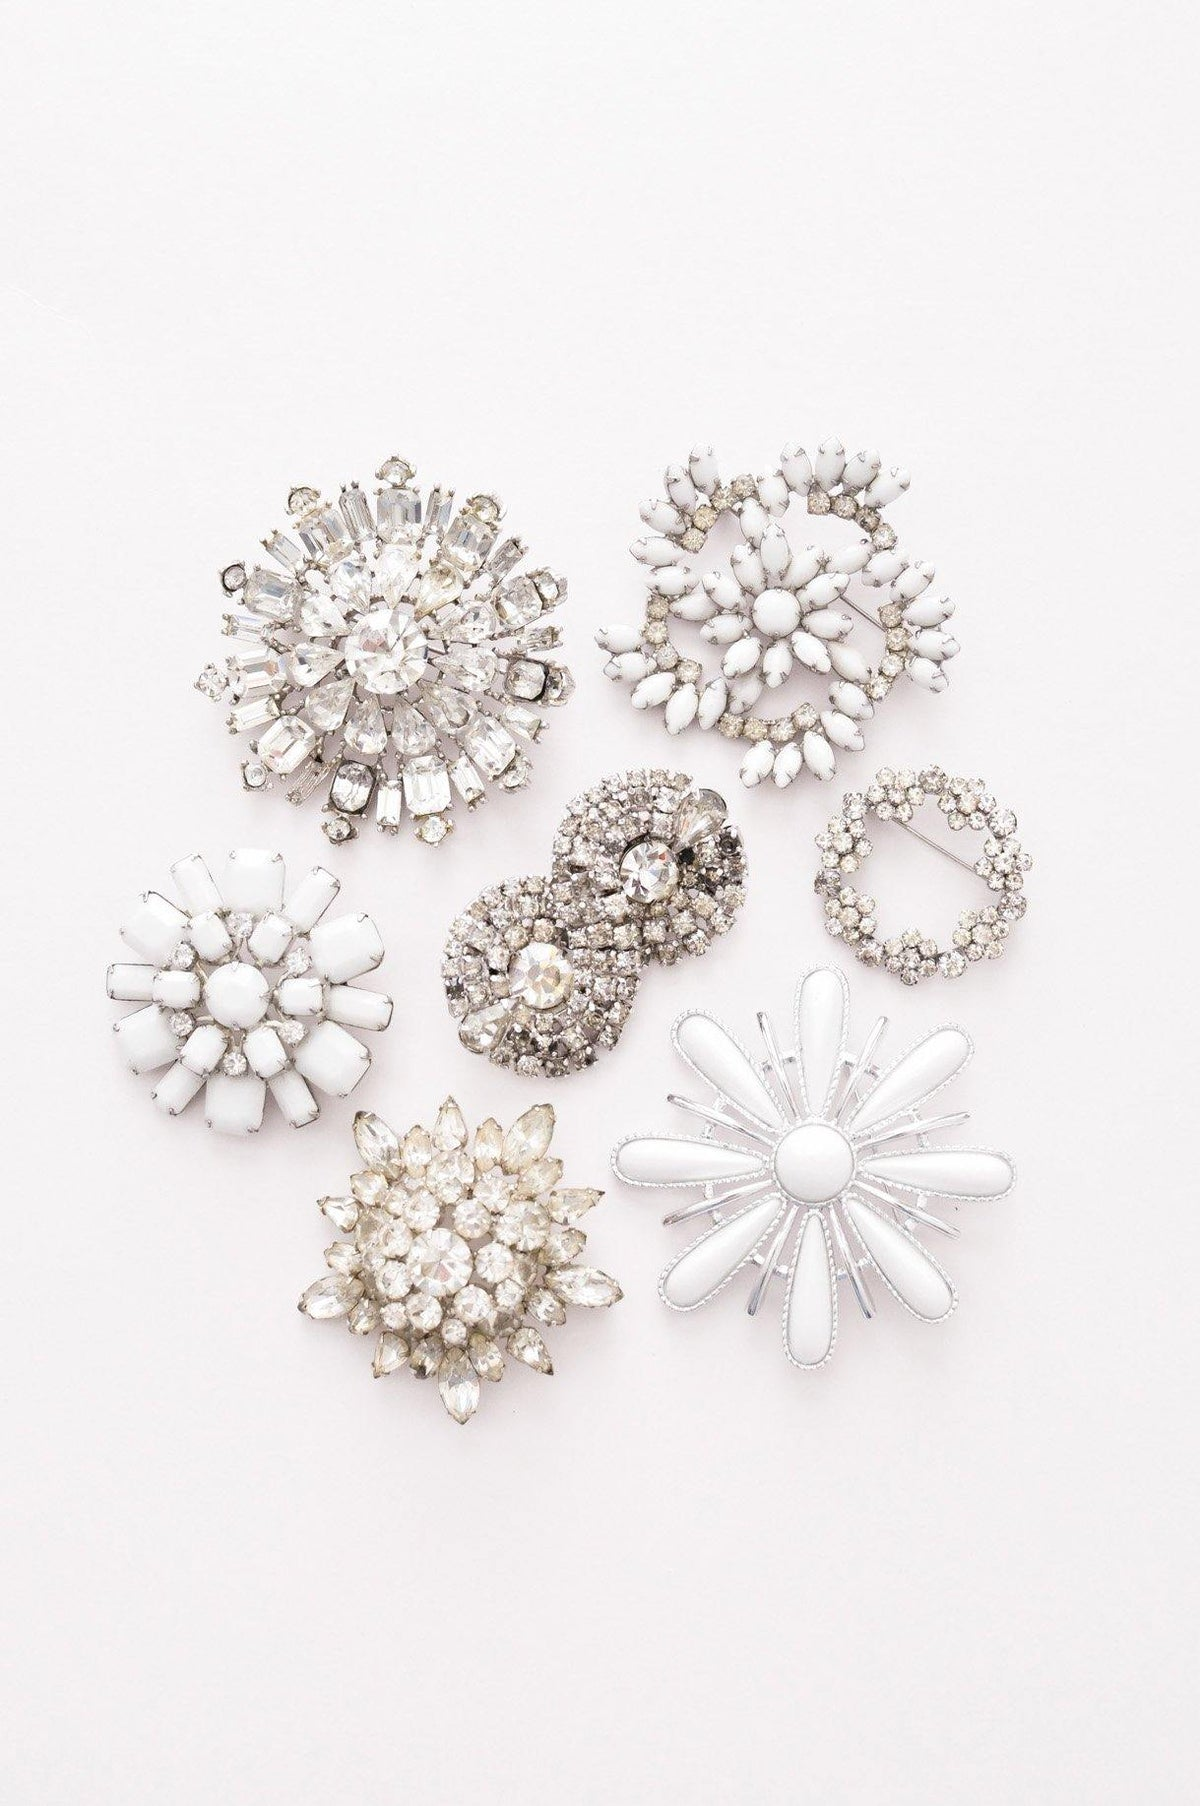 Vintage statement rhinestone brooches from Sweet & Spark.